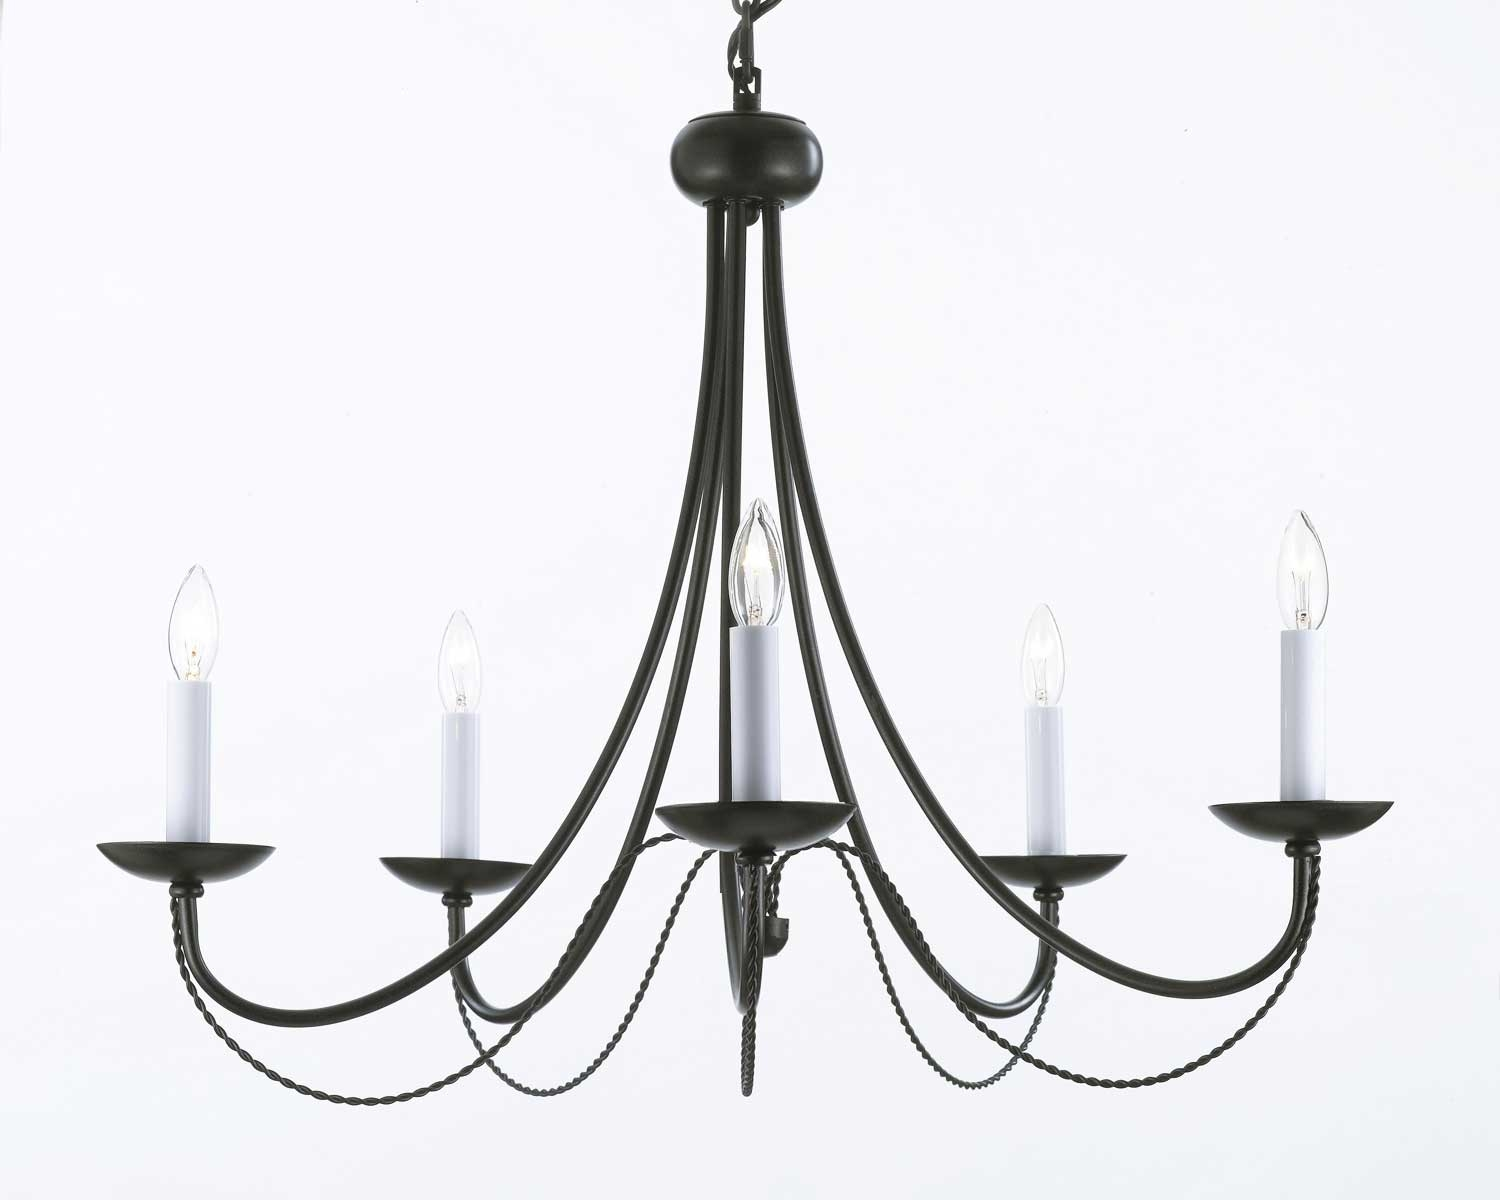 A7 4035 Gallery Wrought Without Crystal Wrought Iron Chandelier With Metal Chandeliers (#3 of 12)